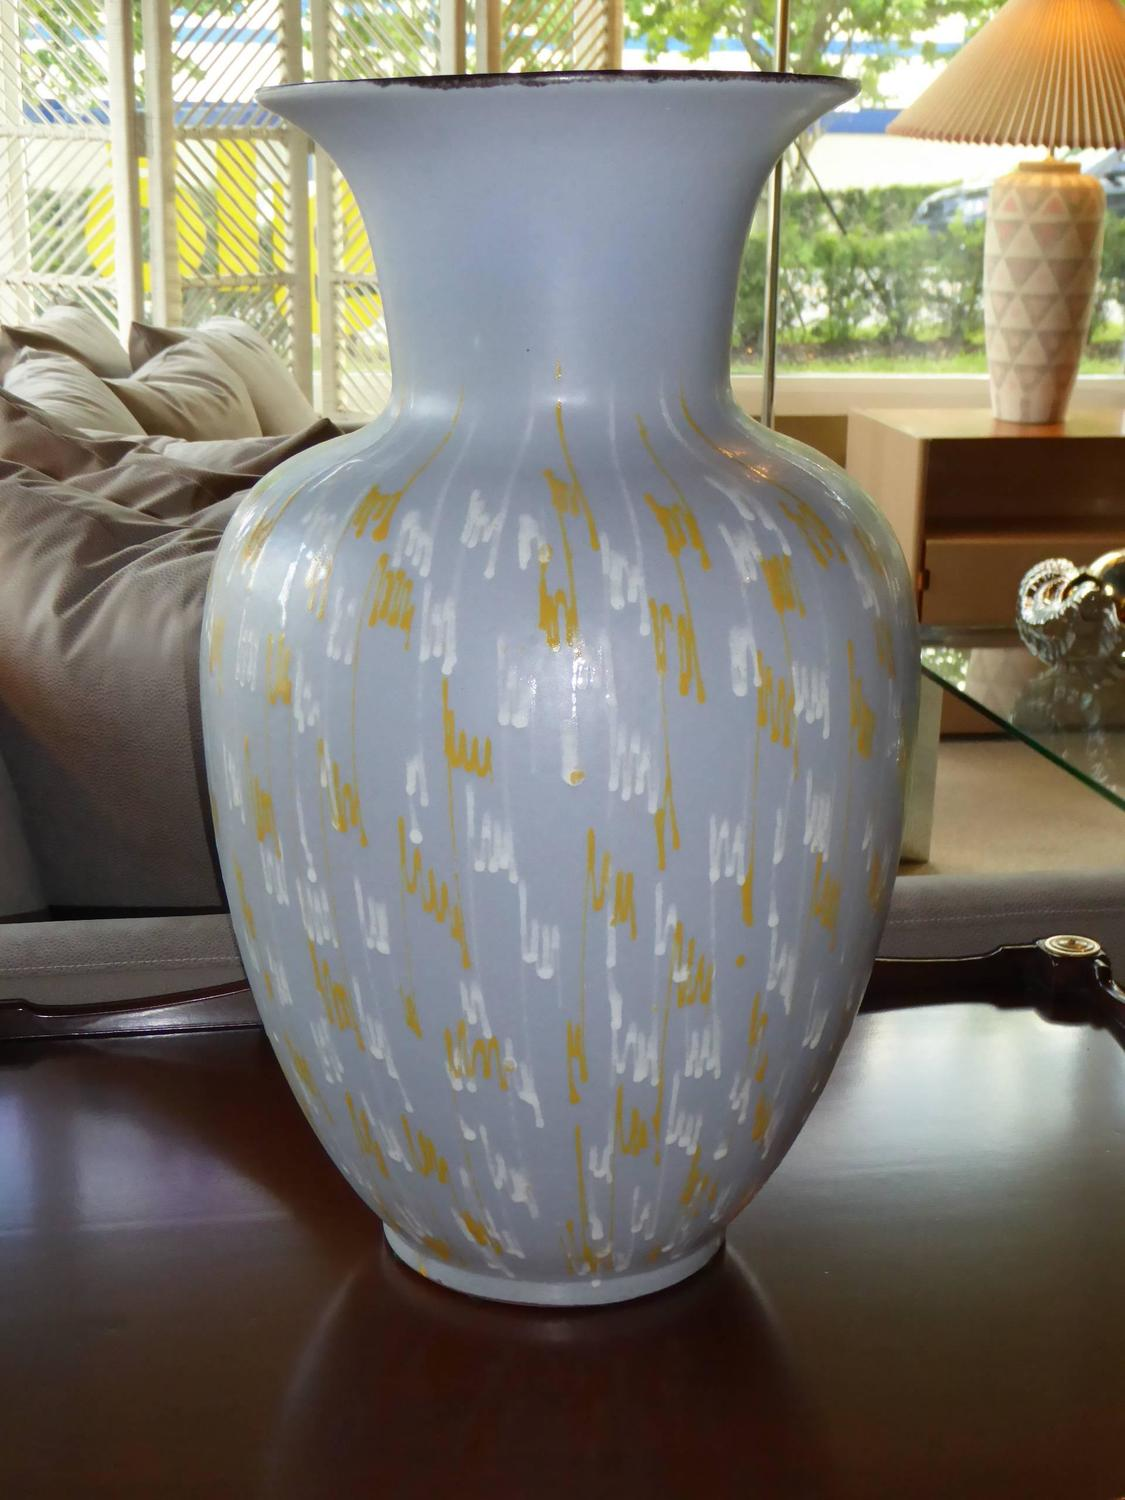 50 Inch Floor Vase Large Carstens 1956 Pottery Floor Vase Germany For Sale At